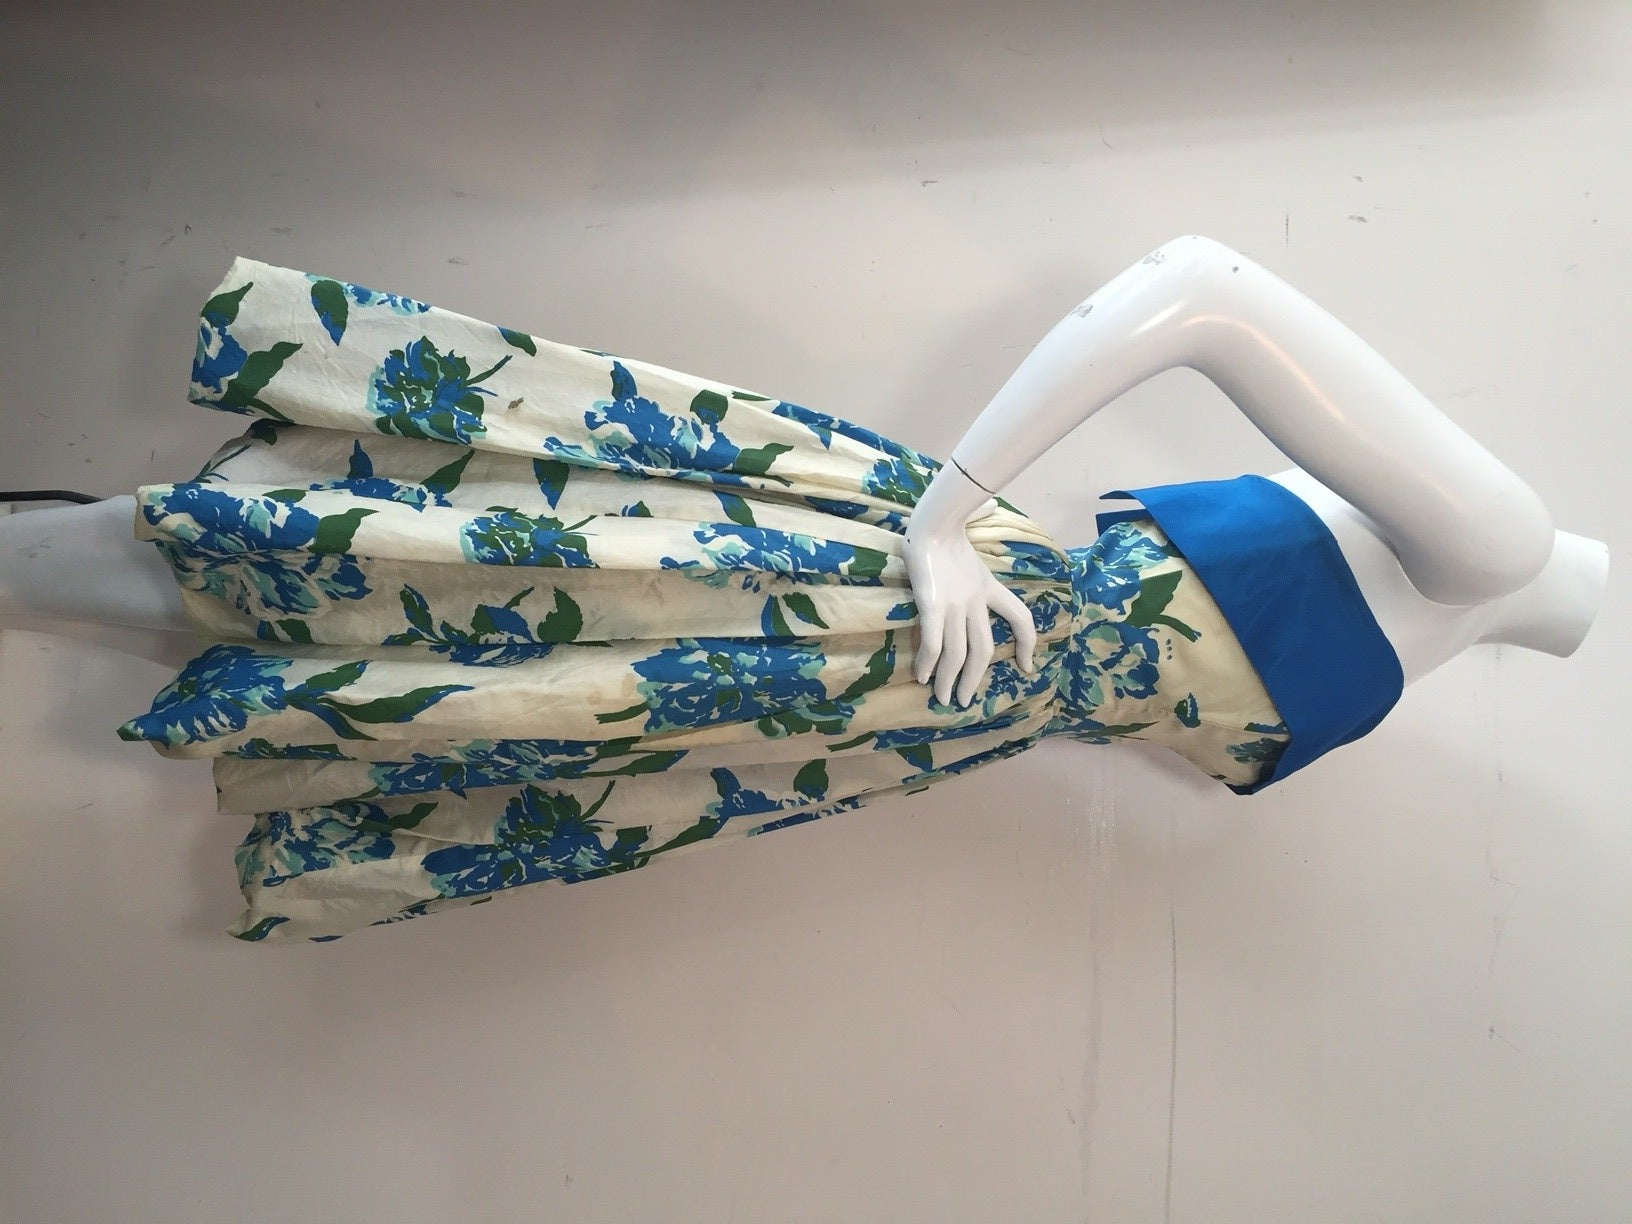 1950s Silk Floral Print Strapless Summer Dress in White, Blue and Green 6